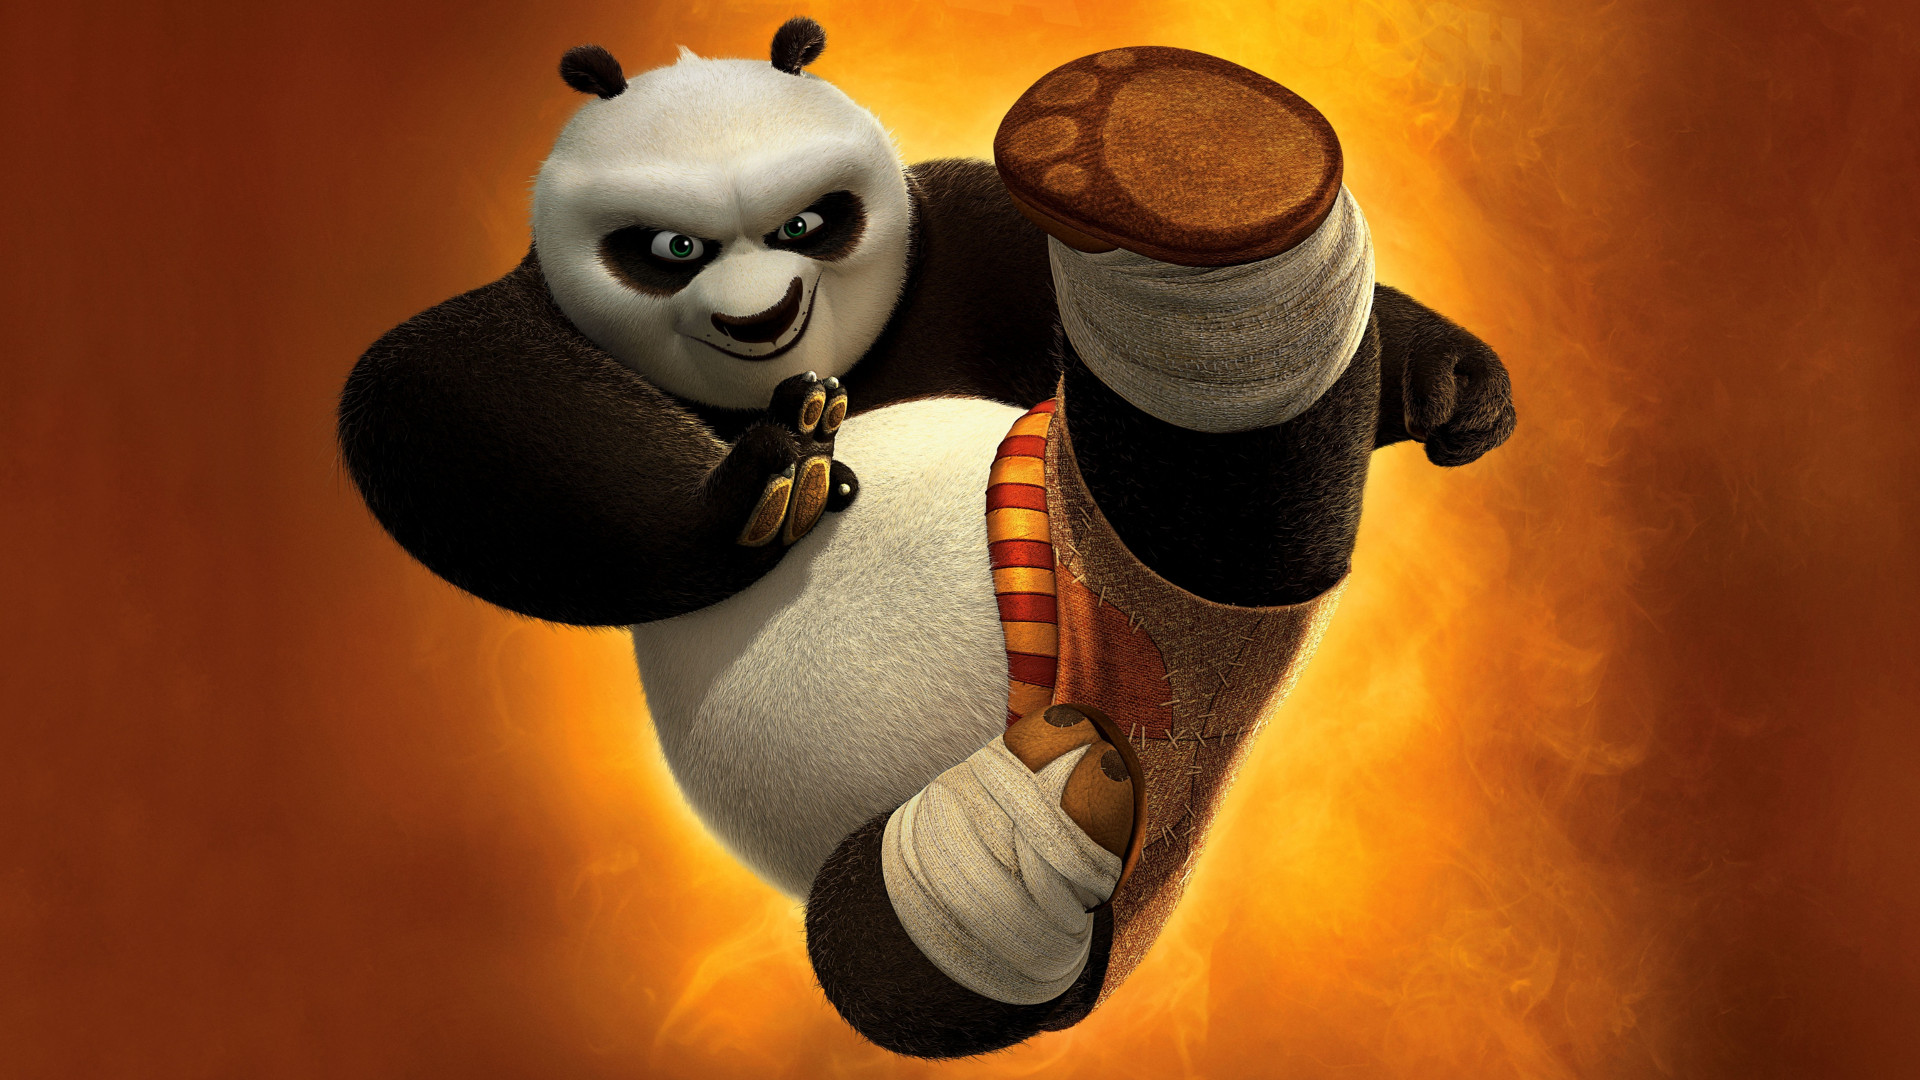 image - kung-fu-panda-3-po | death battle wiki | fandom powered